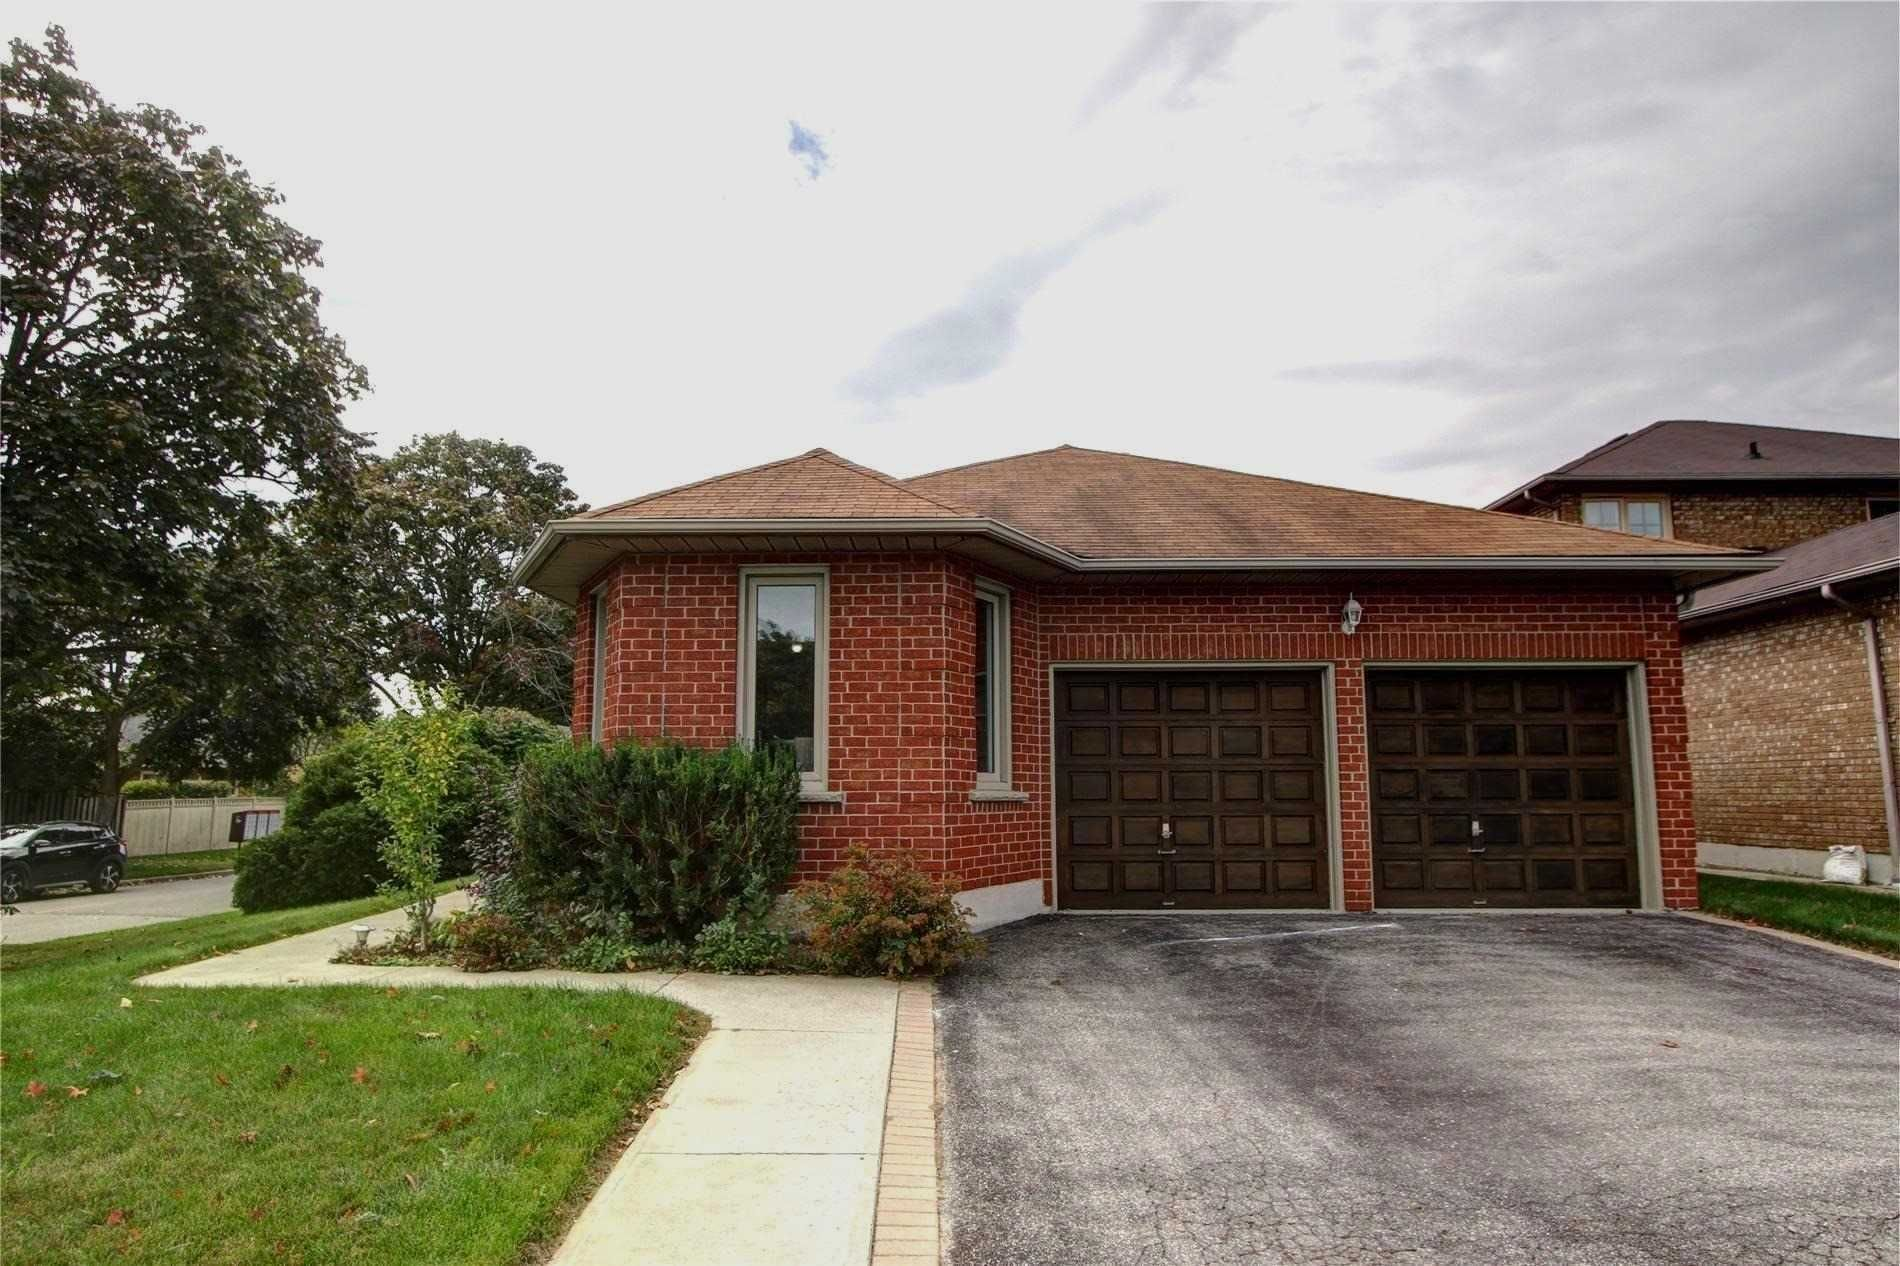 Main Photo: 2 Wyndfield Crescent in Whitby: Freehold for sale : MLS®# E4591604